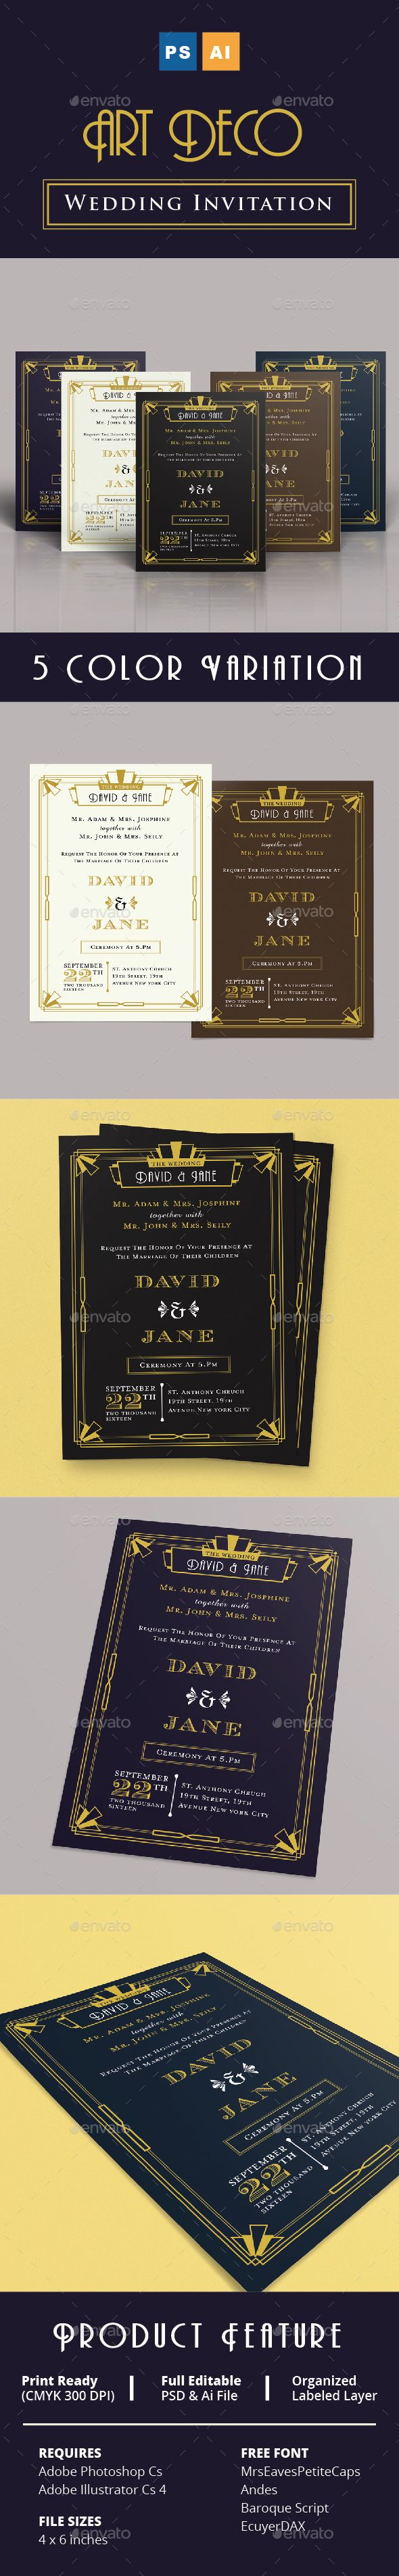 free wedding invitation psd%0A Art Deco Wedding Invitation